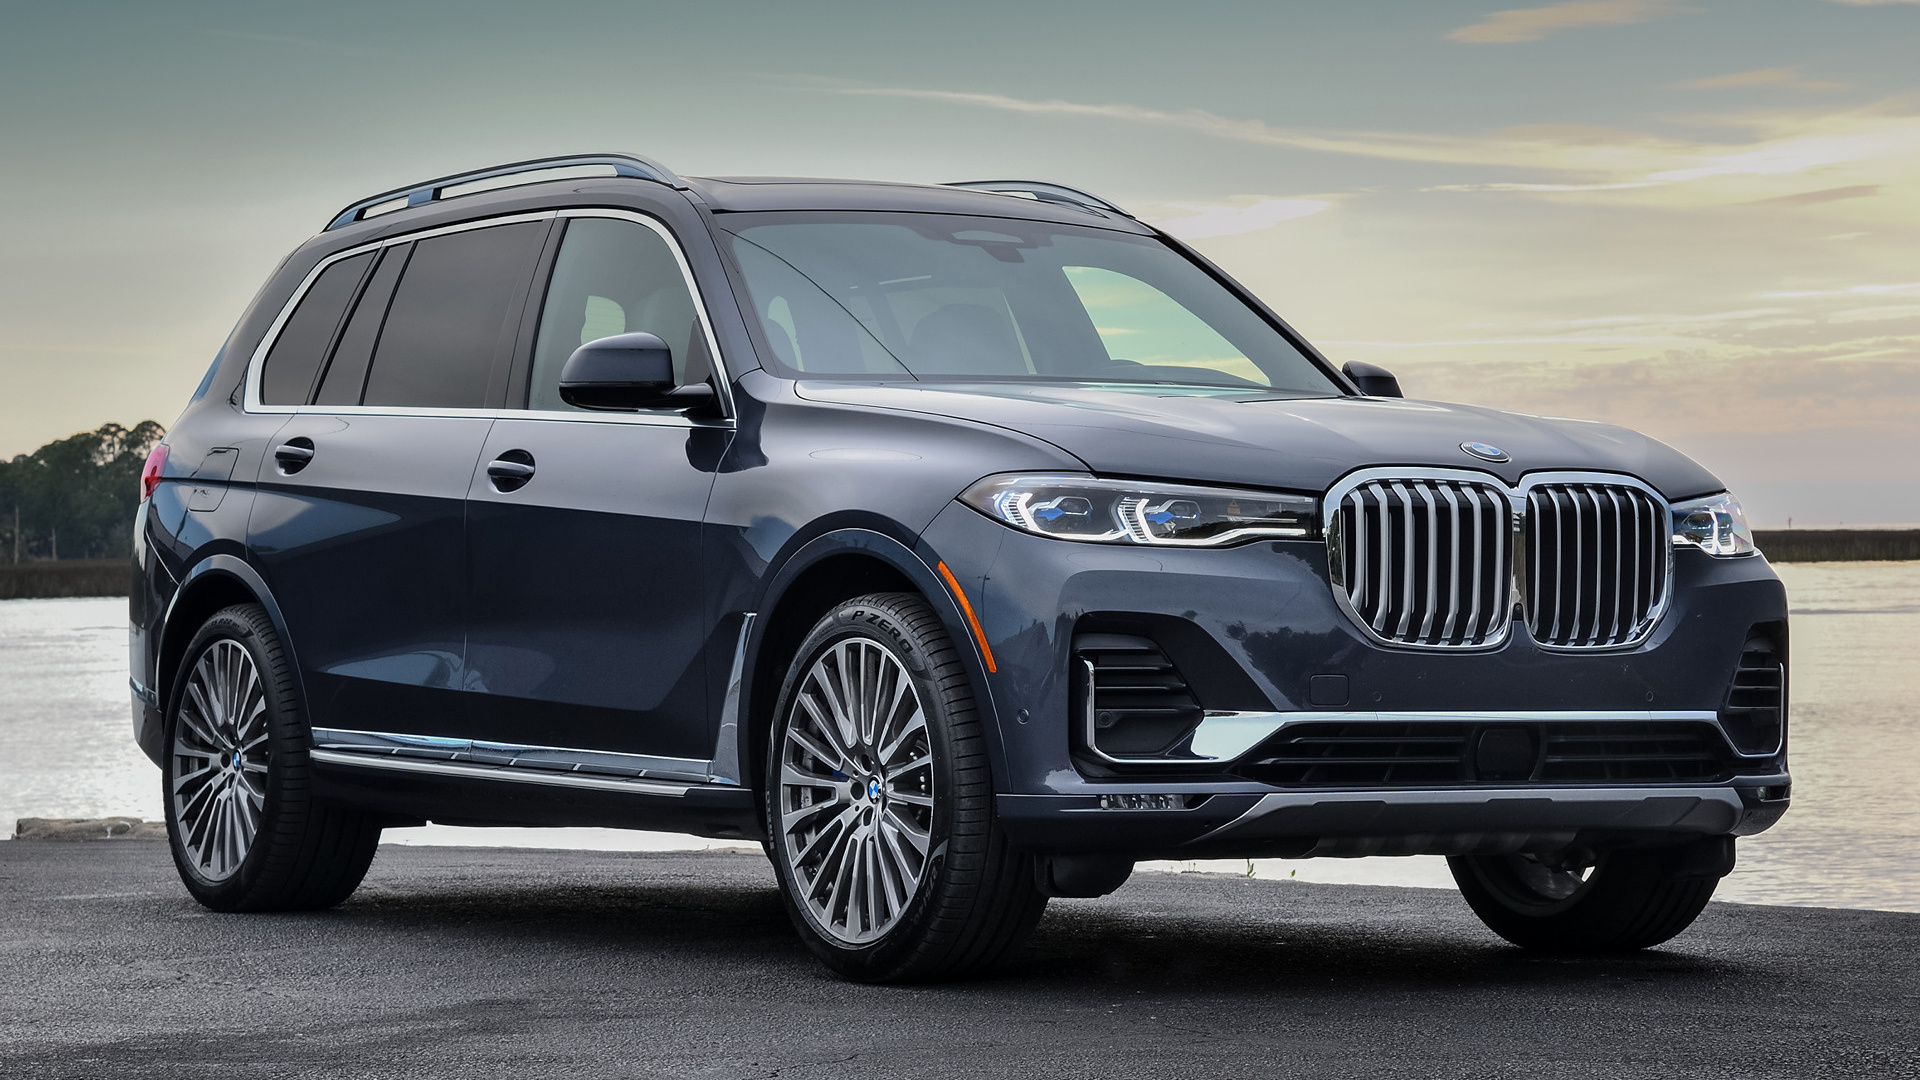 2020 Bmw X7 Us Sfondi E Immagini Hd Per Desktop Car